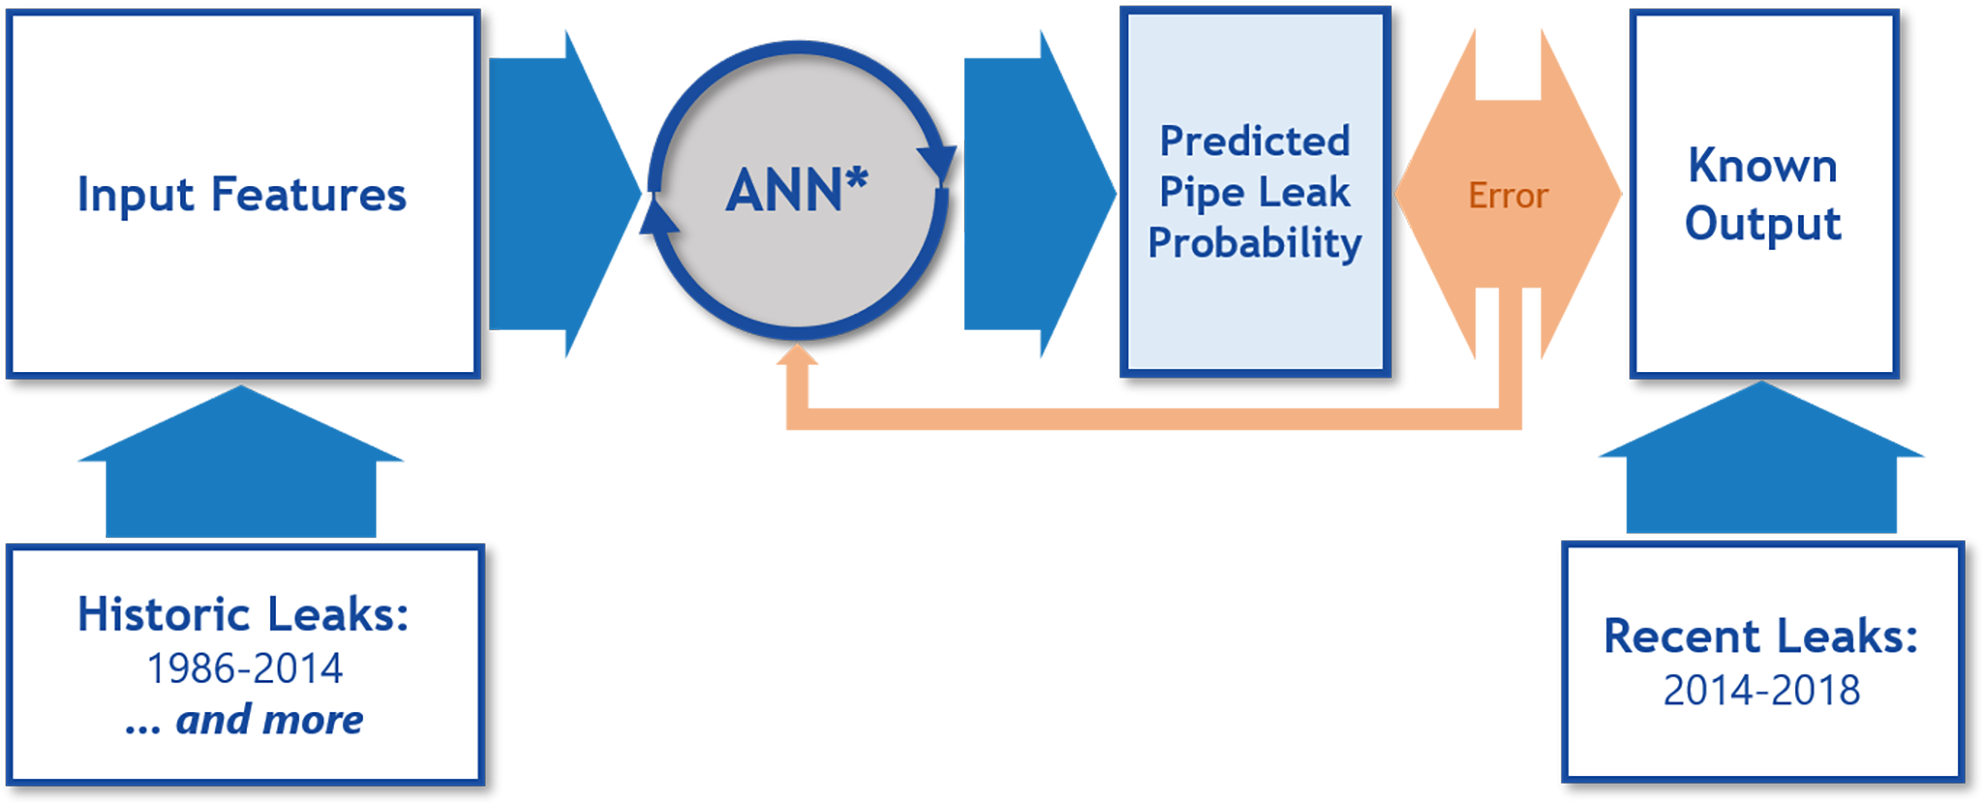 Pipeline leak Prediction flow chart: historic leaks leads to input features leads to ANN* which results in an error or prediction of possible pipe like then known output .